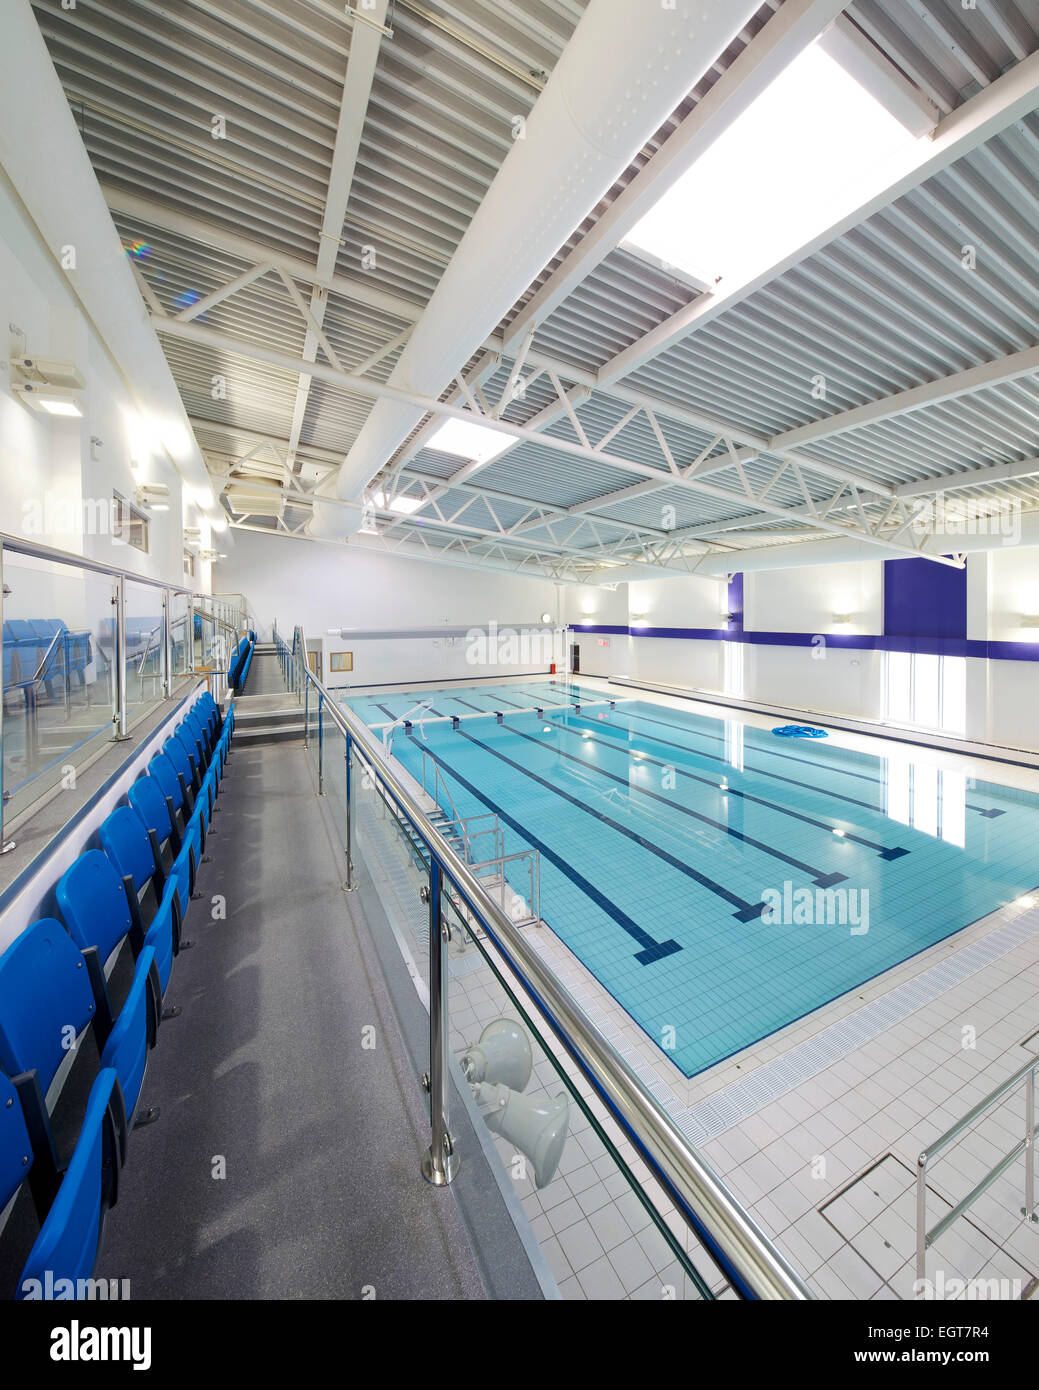 Swimming Pool In Leisure Centre By Wates Construction For John Laing Stock Photo Royalty Free